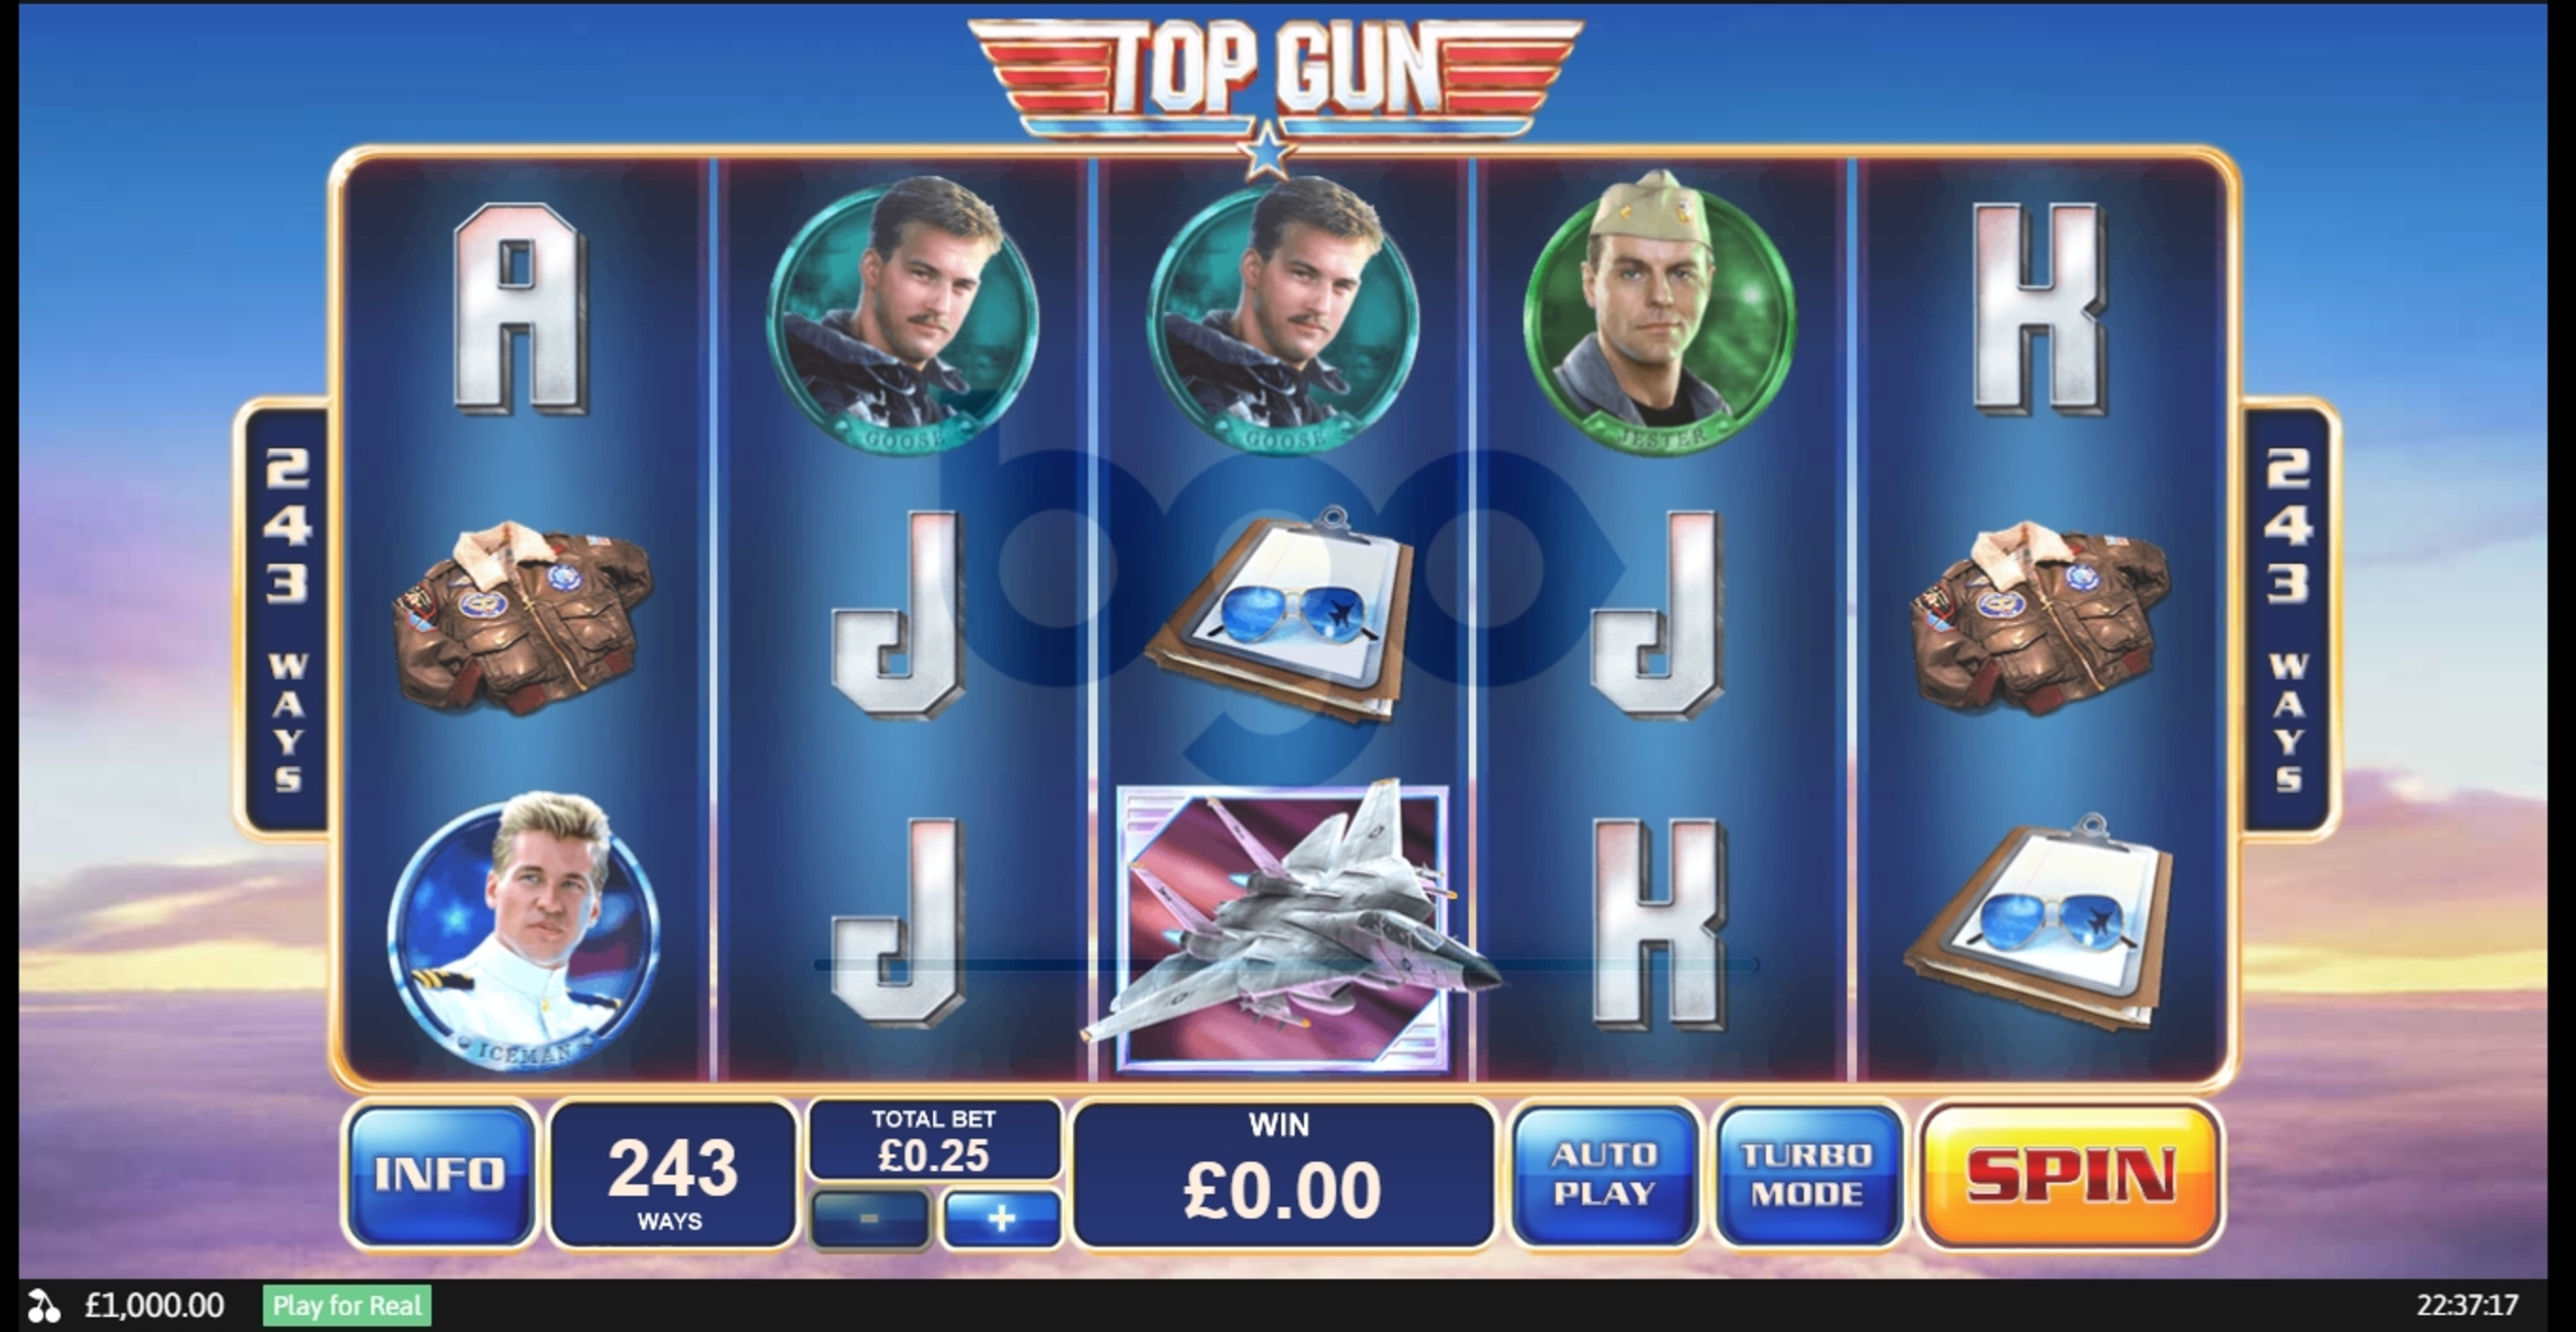 Reels in Top Gun Slot Game by Playtech